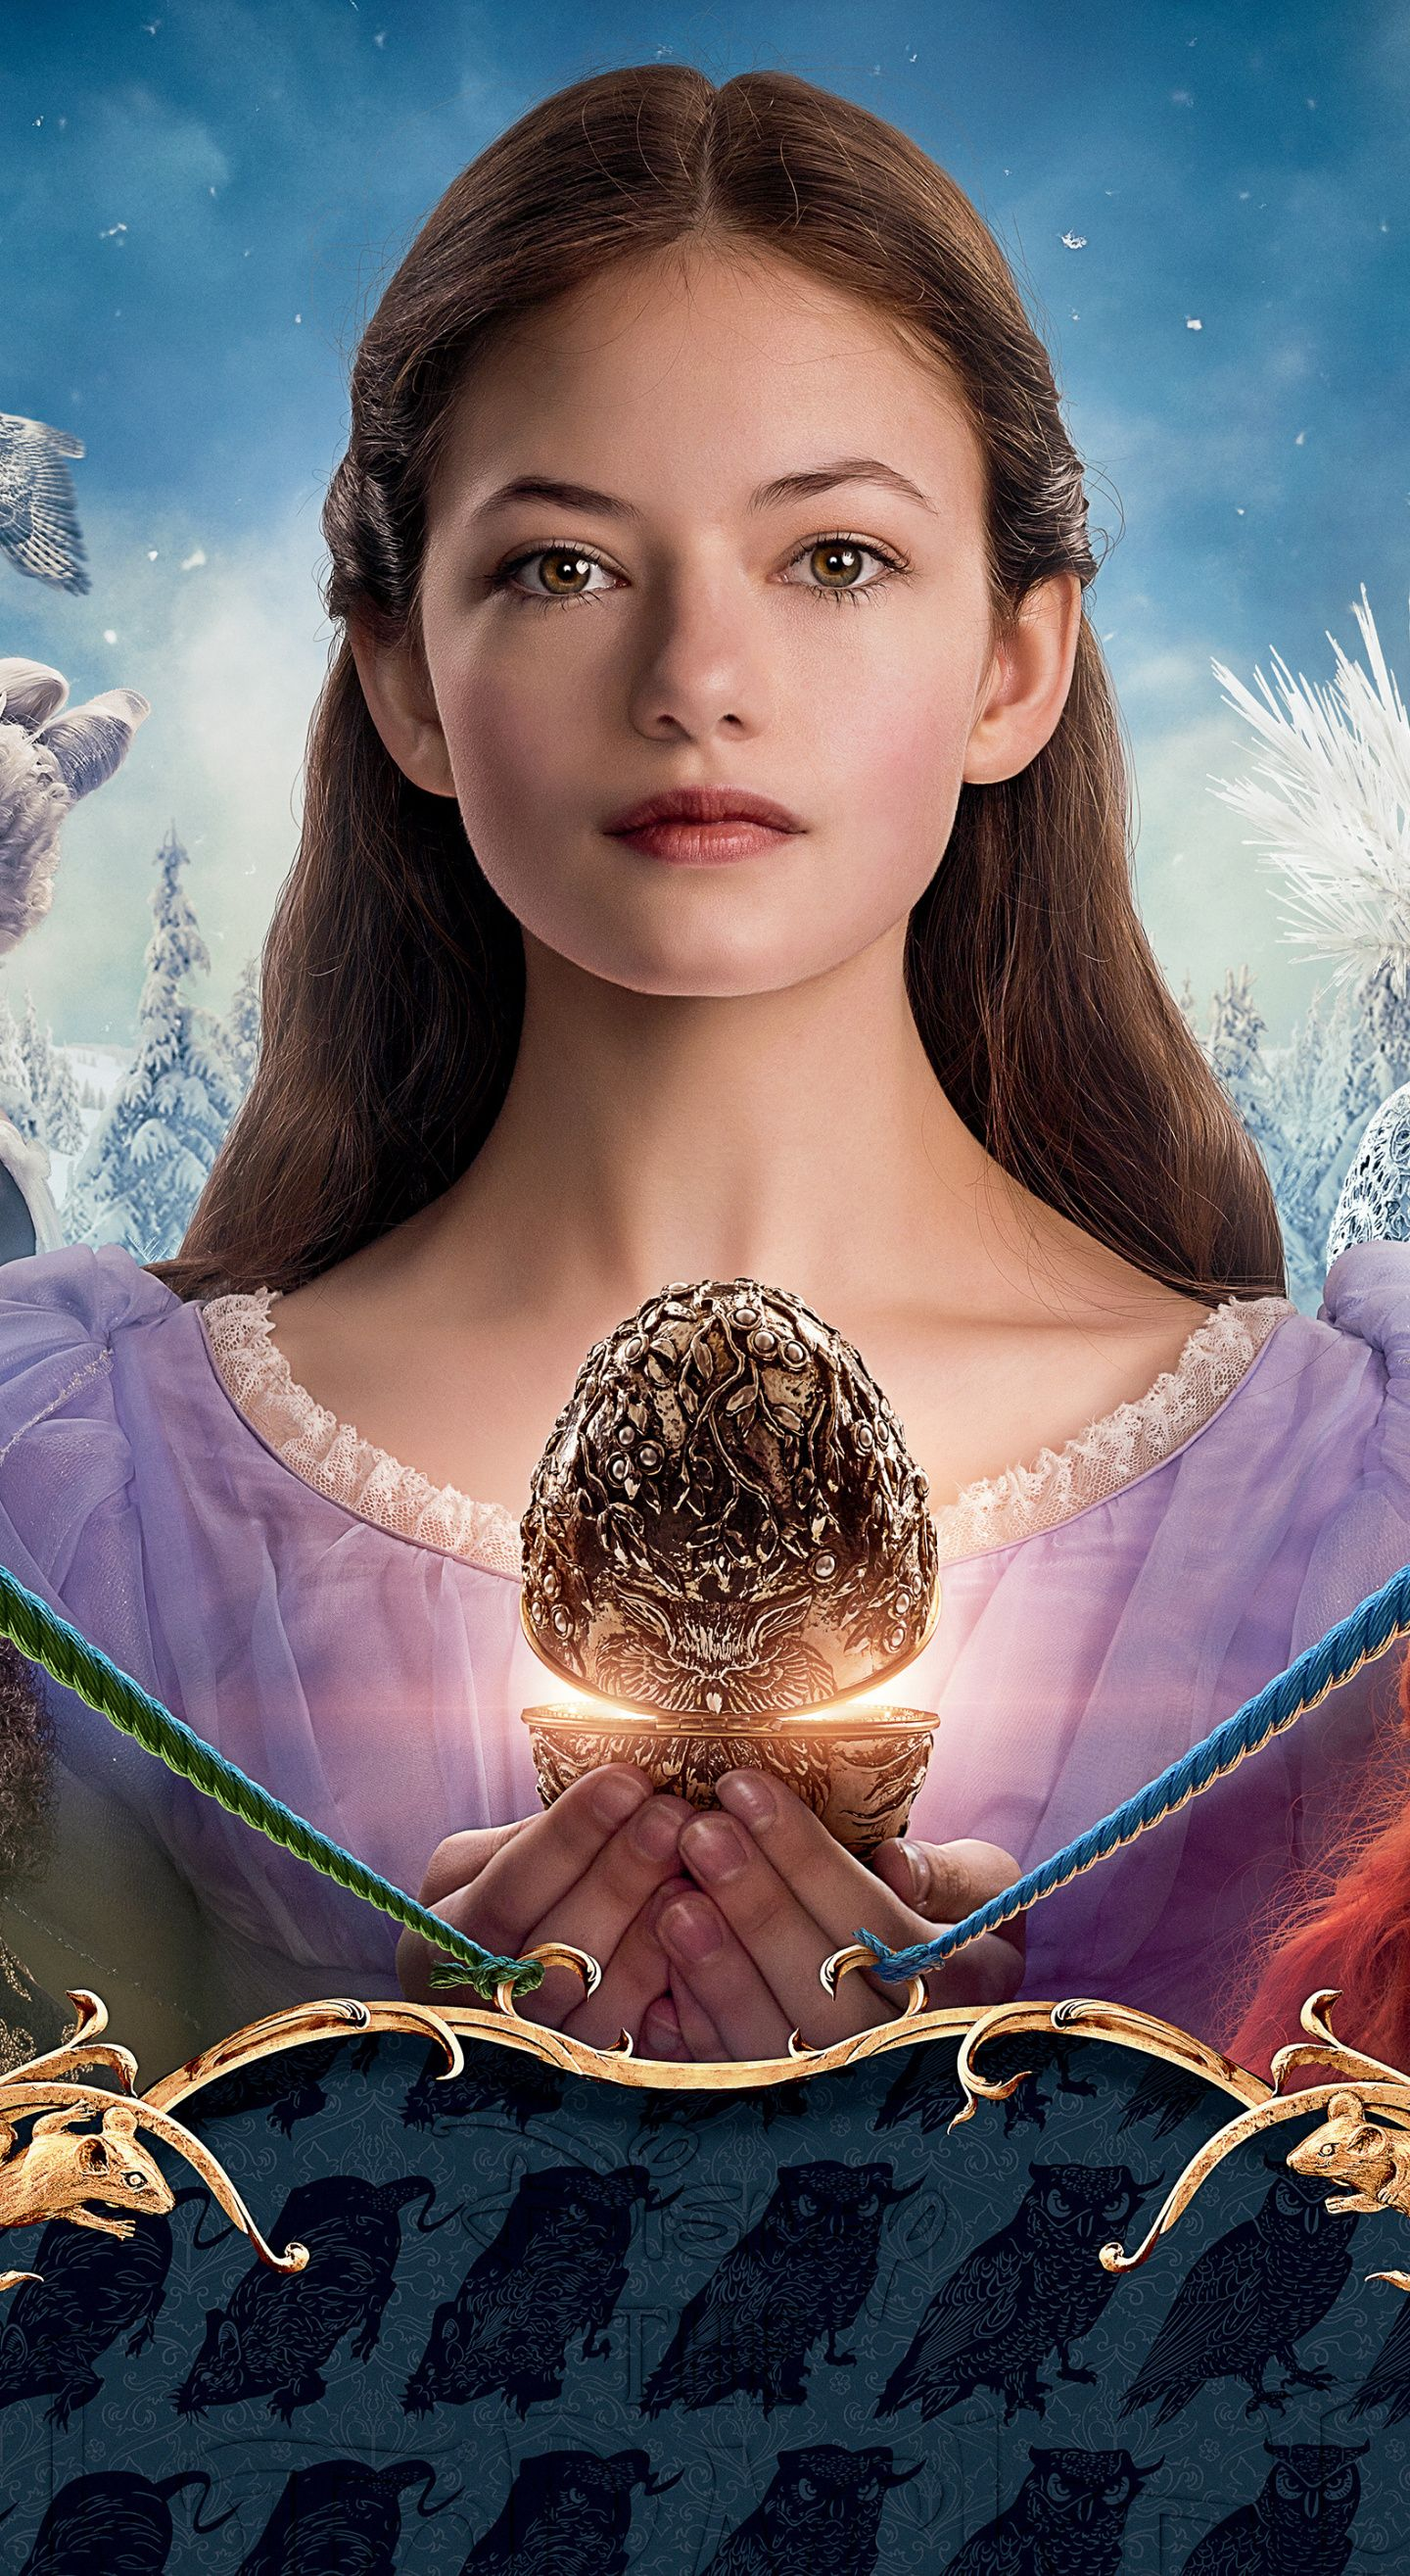 The Nutcracker and the Four Realms poster movie 1440x2630 1440x2630